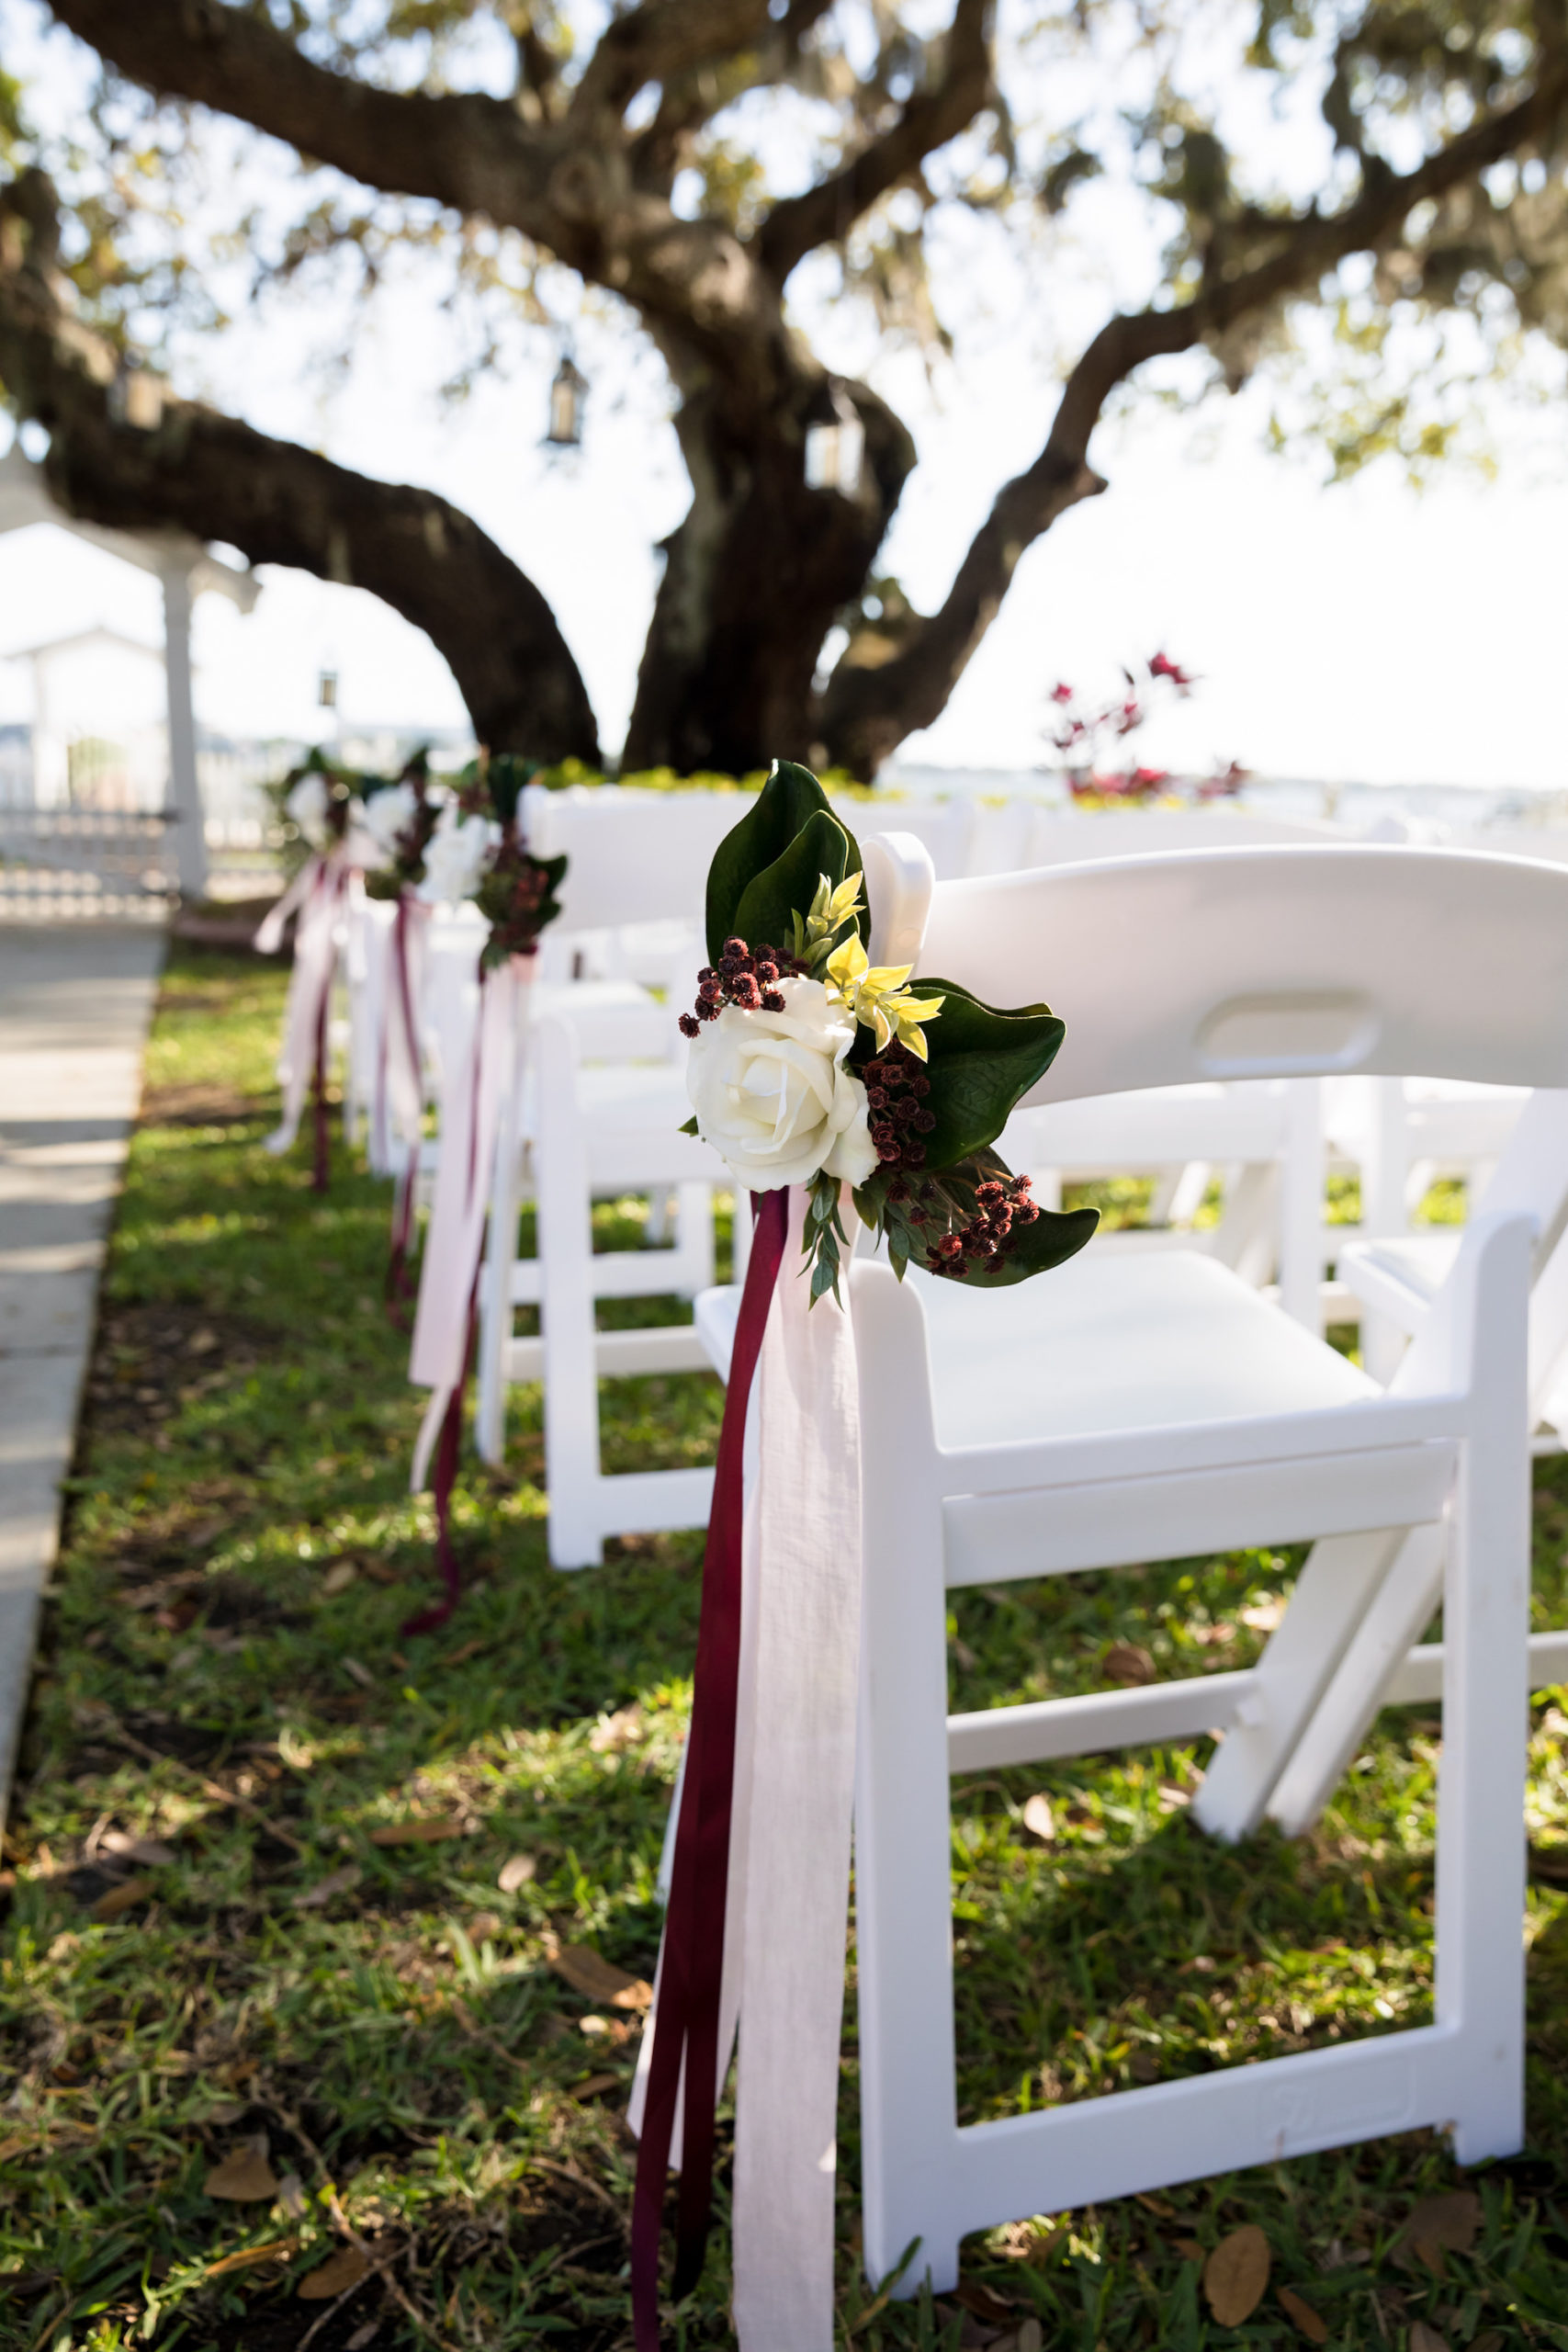 Simple Classic Wedding Ceremony Decor With White Folding Chairs White Rose With Green Leaves And Burgundy Accent Tampa Bay Wedding Planner Coastal Coordinating Marry Me Tampa Bay Local Real